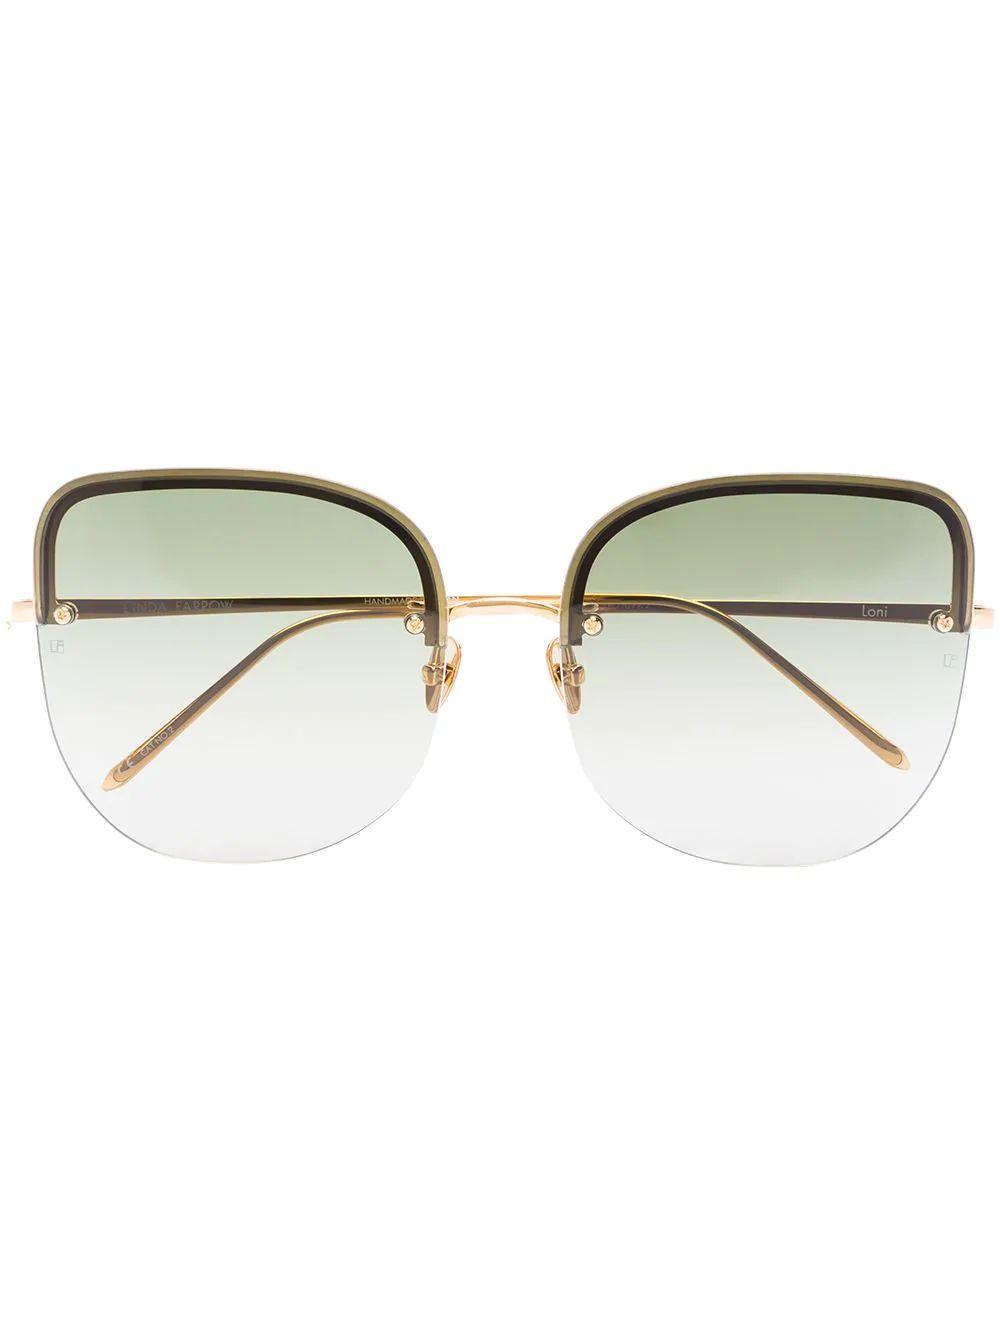 Loni 18kt Gold- Plated Sunglasses